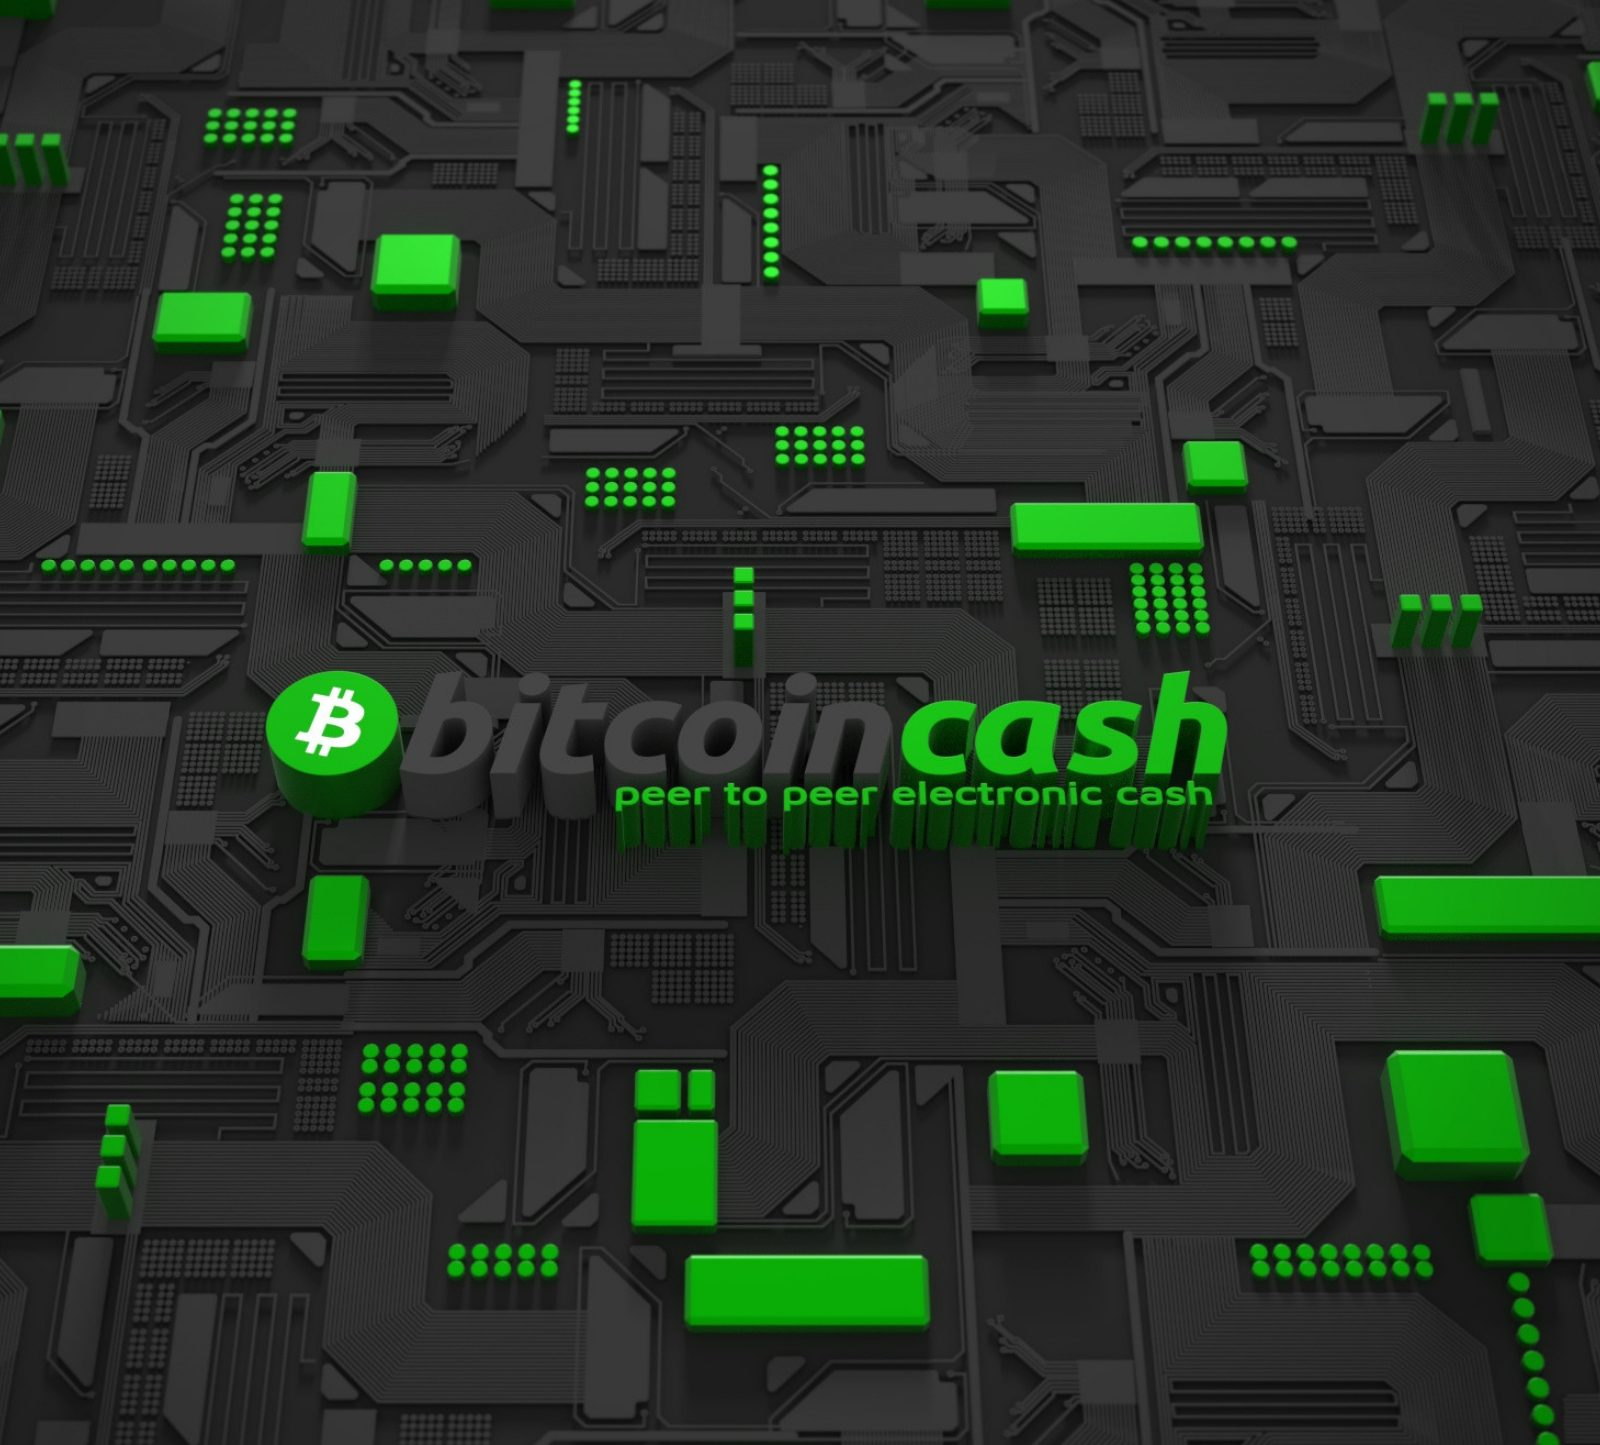 21,000 New Locations Across Canada, Europe, Australia to Purchase Bitcoin Cash